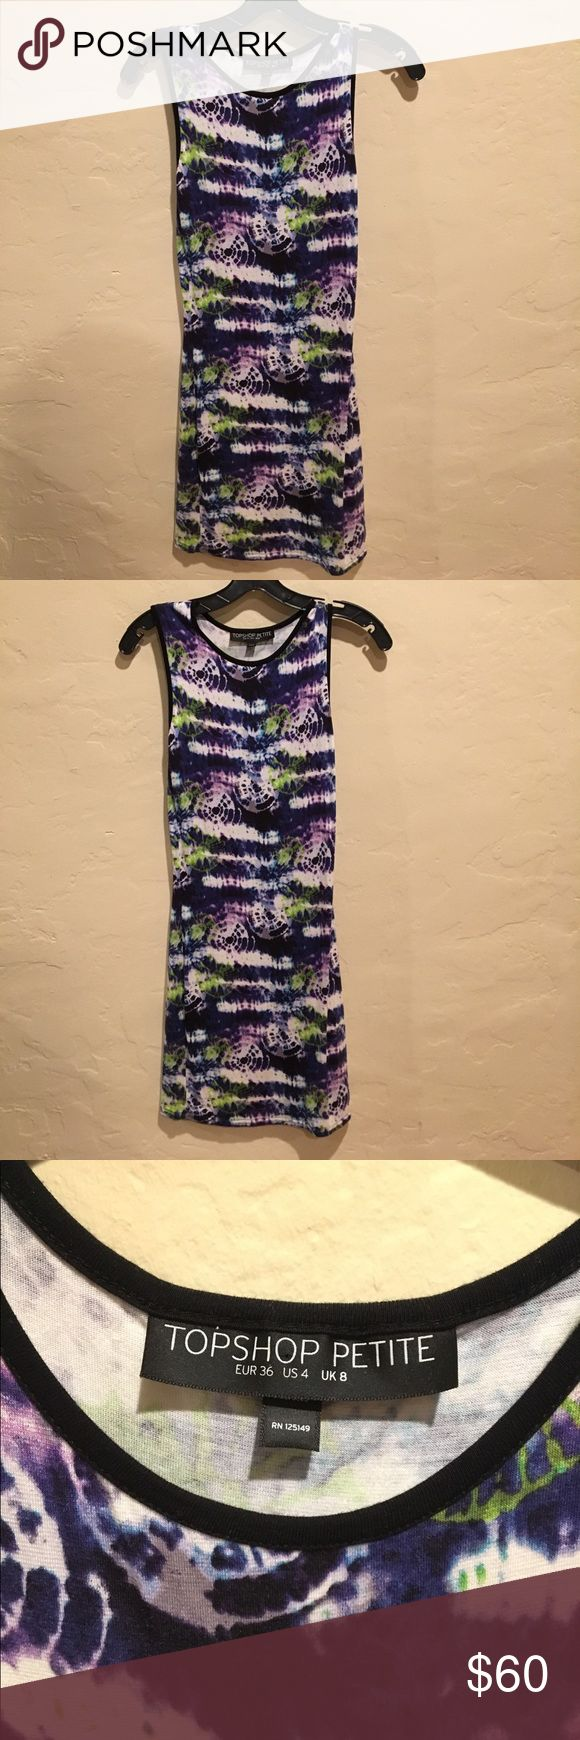 Blue, Purple, Green Topshop Petite Bodycon Dress This is a really cute body hugging dress from topshop! Really love it and am only selling bc i have so many dresses. It's sold as a 4 but I'm a 2 and it fits perfectly! Topshop Dresses Mini